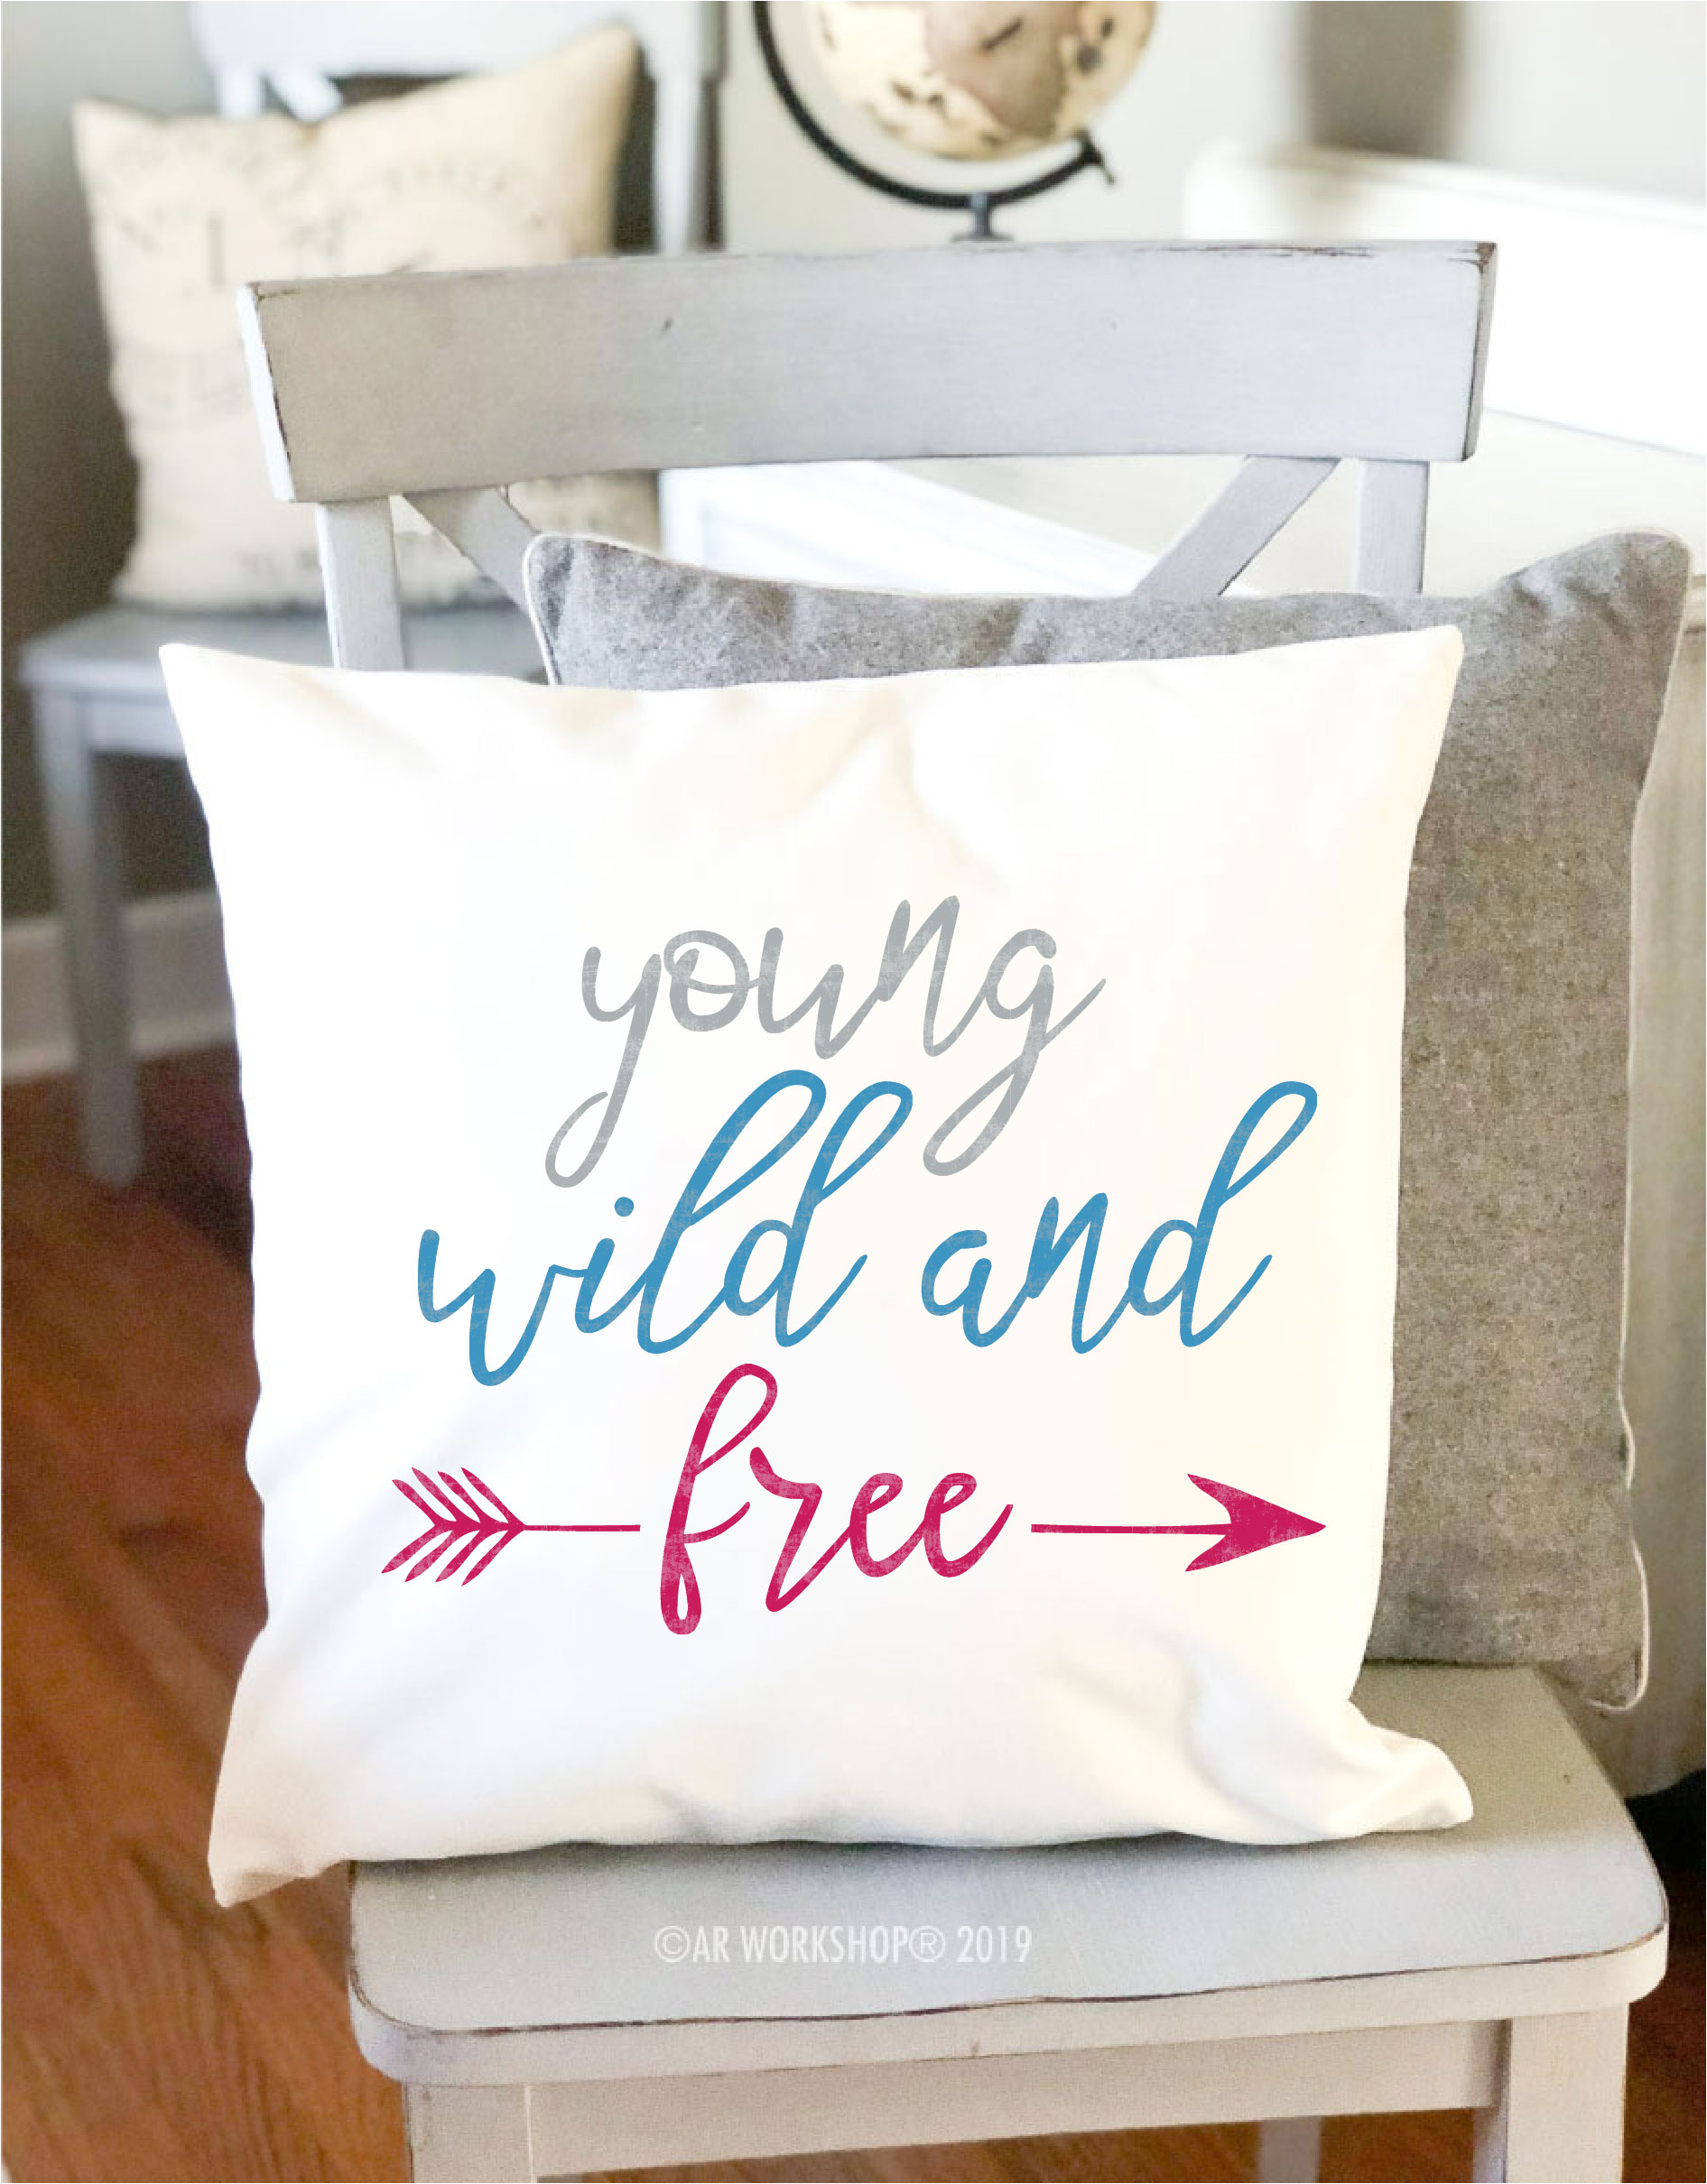 young wind and free kids canvas pillow